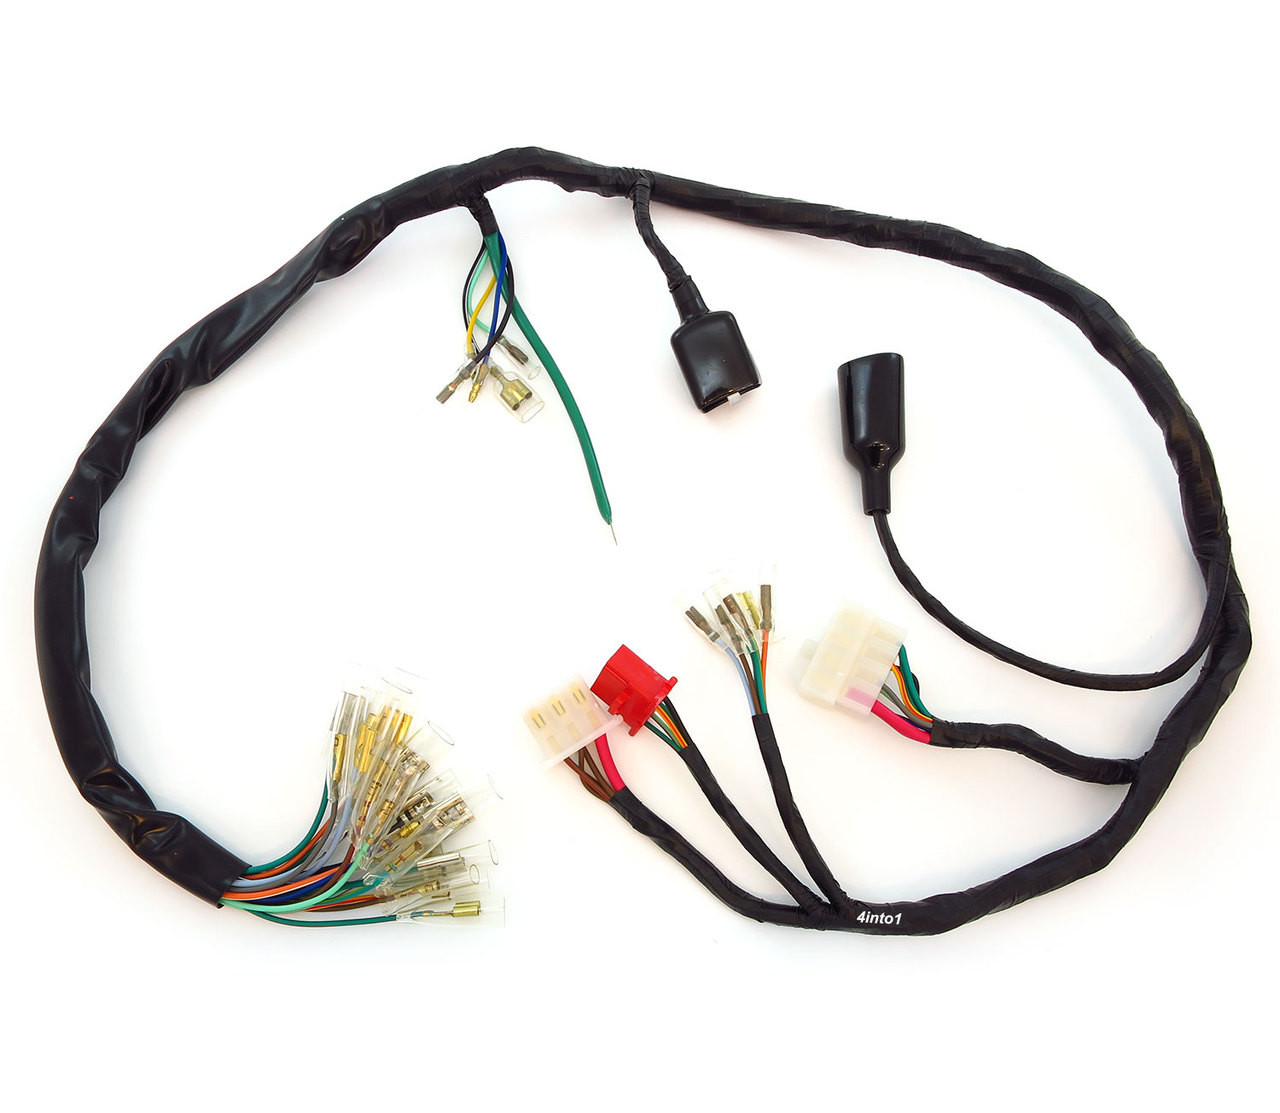 small resolution of main wiring harness 32100 374 000 honda cb550k 1974 1975 image 1